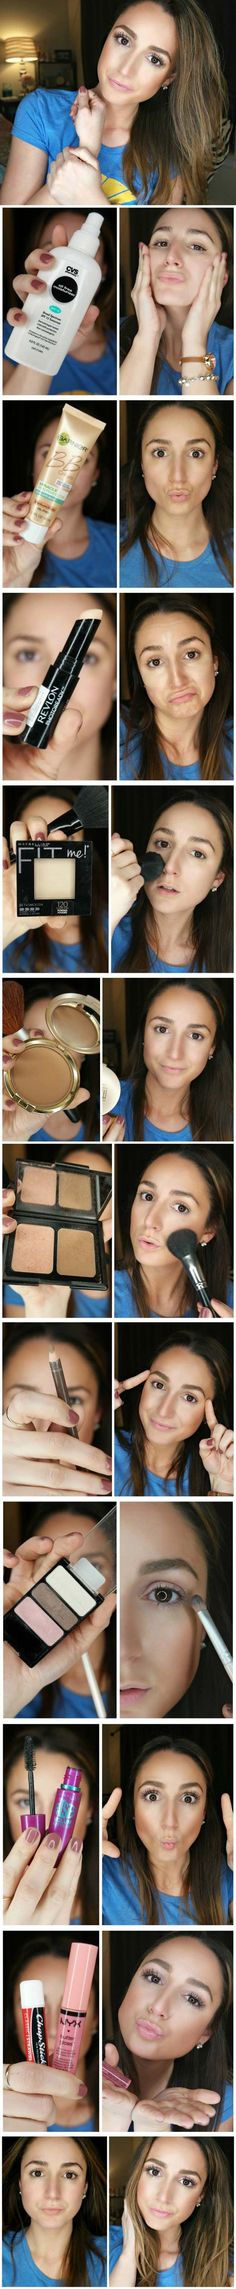 Best Makeup Tutorials for Teens -5 Minute Everyday Makeup Routine - Easy Makeup Ideas for Beginners - Step by Step Tutorials for Foundation, Eye Shadow, Lipstick, Cheeks, Contour, Eyebrows and Eyes - Awesome Makeup Hacks and Tips for Simple DIY Beauty - Day and Evening Looks diyprojectsfortee...